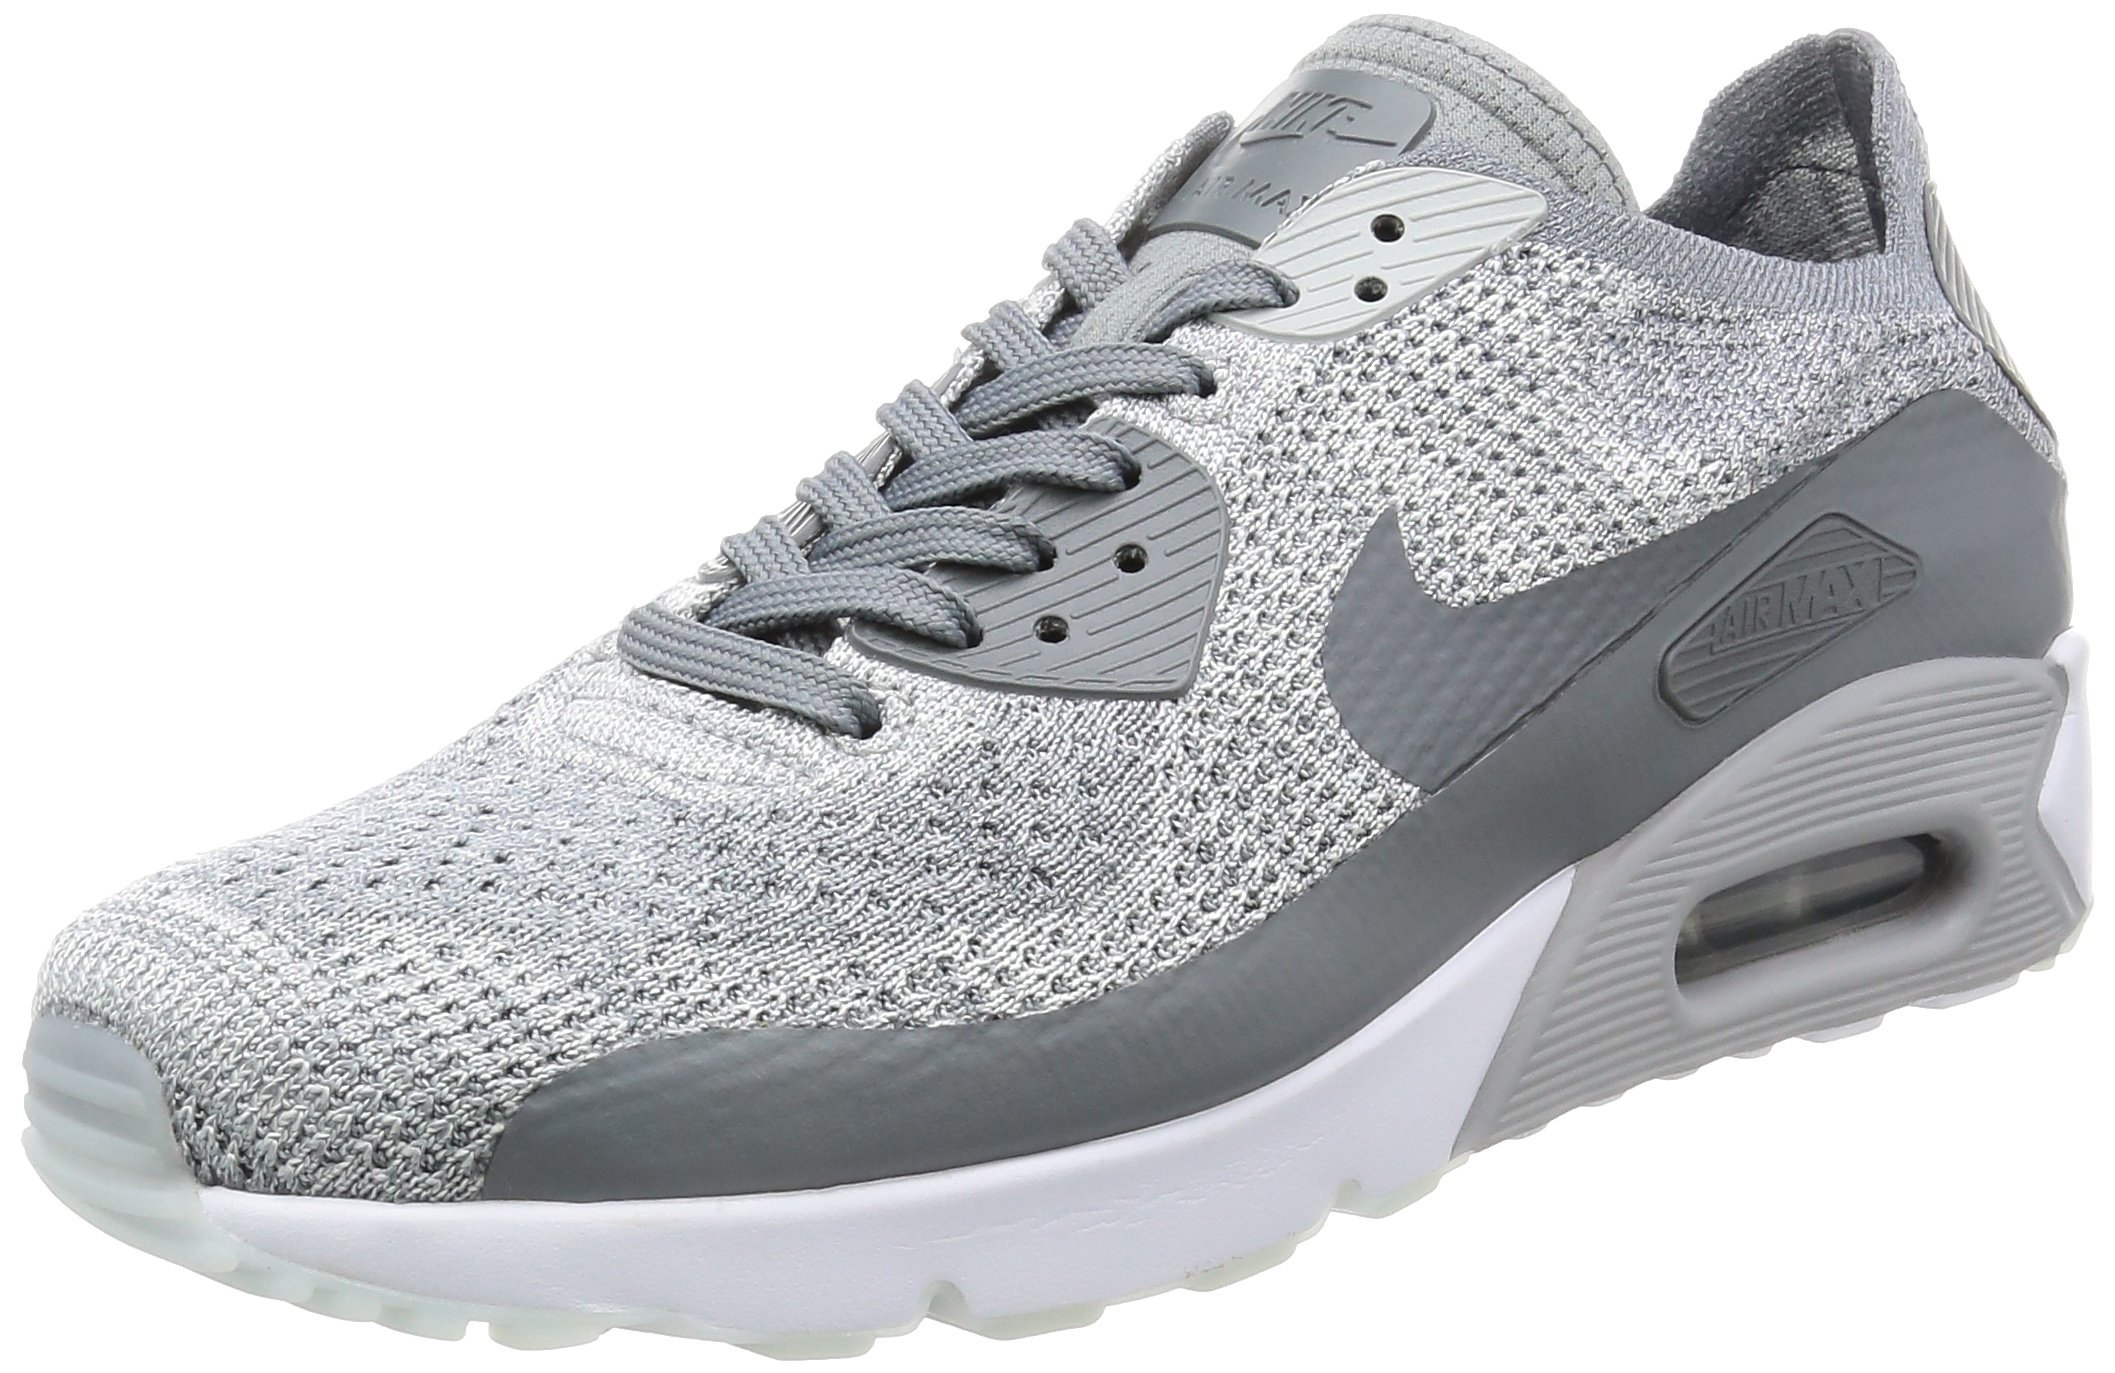 new style a08e0 550e6 Galleon - Nike AIR MAX 90 Ultra 2.0 Flyknit Mens Running-Shoes 875943-003 9.5  - Pure Platinum Cool Grey-White-Wolf Grey